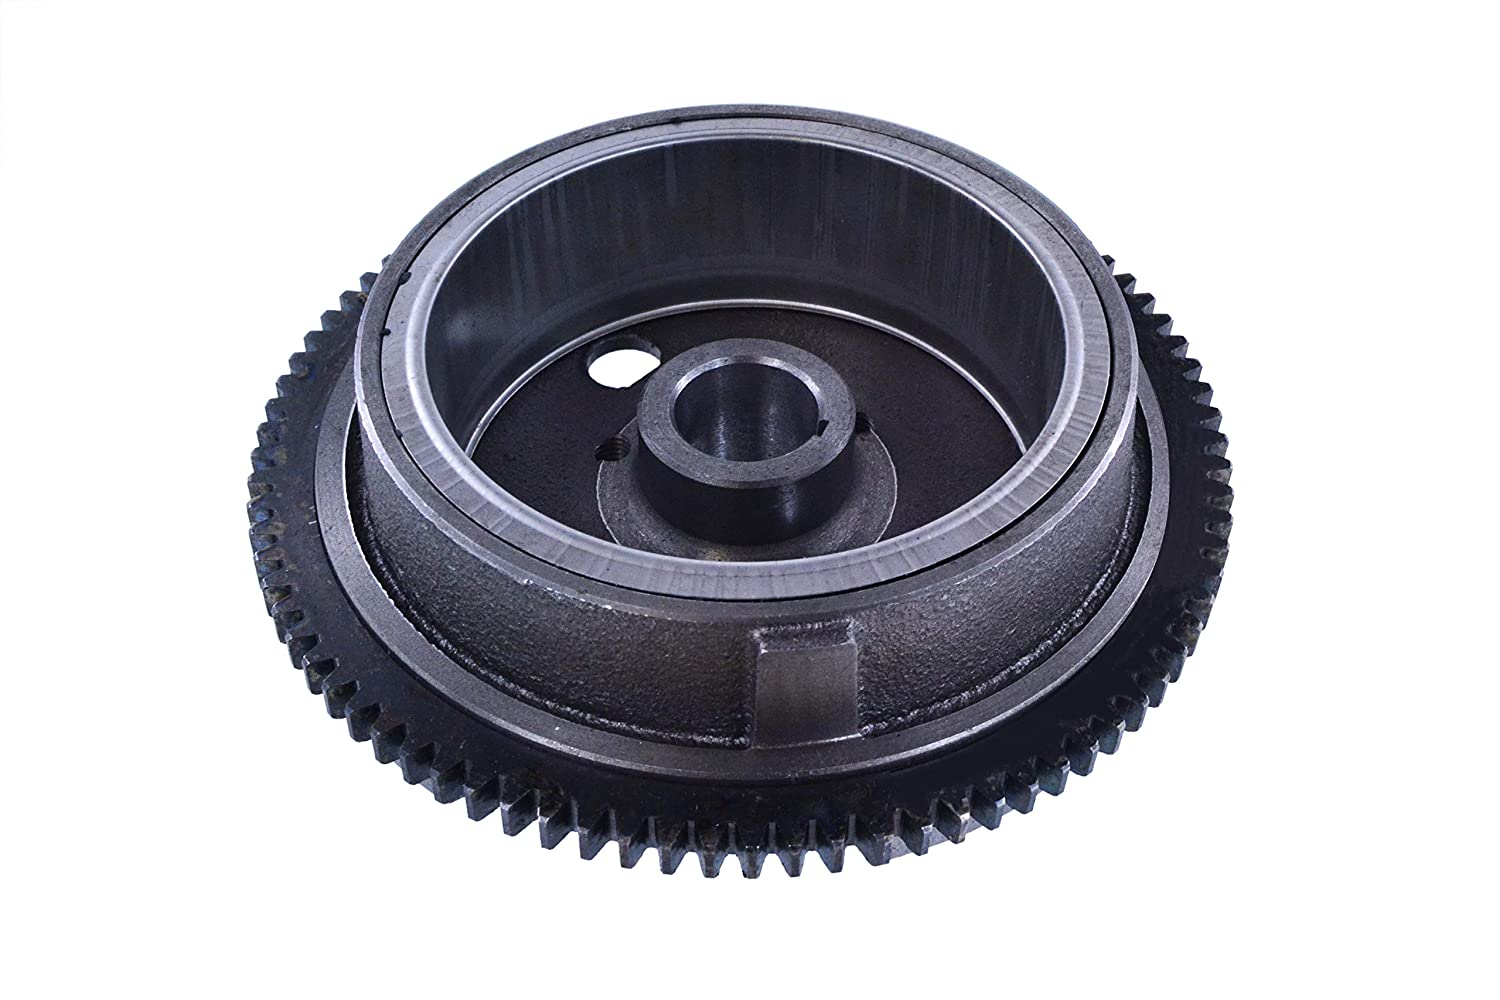 Improved Flywheel For Polaris 400 L/Big Boss/Norwegian / Scrambler/Sport / Sportsman 2x4 4x4 / Xplorer/Xpress 300 400 L 1994-2003 OEM Repl.# 3084760 3084784 RMSTATOR